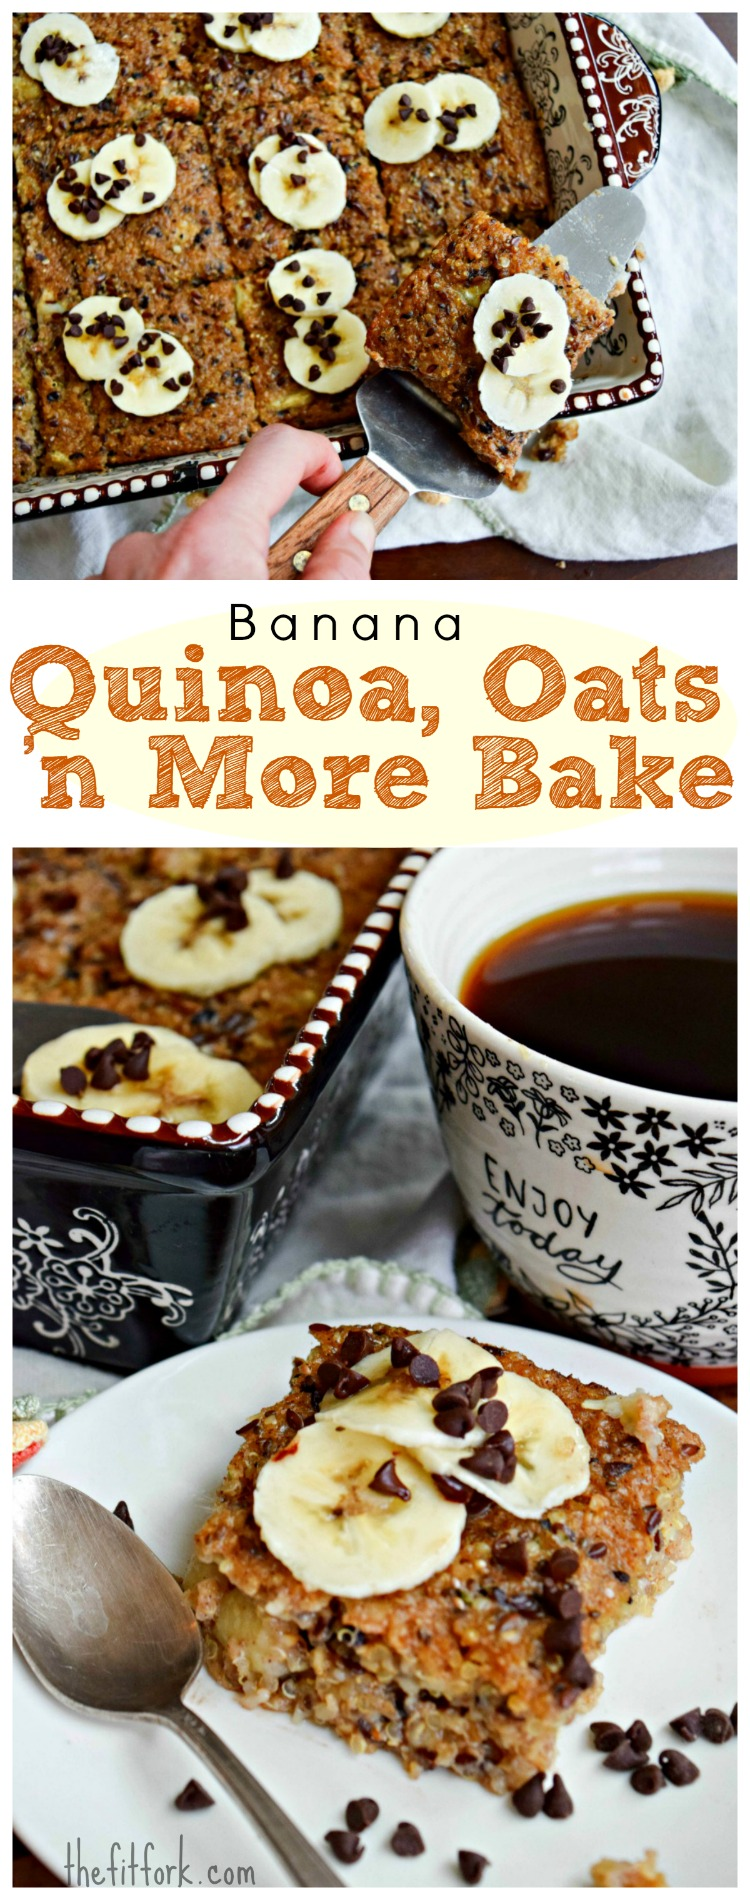 Banana, Quinoa, Oats 'n More Breakfast Bake is a hearty and wholesome hot breakfast that warms you up from the inside out during winter. Jump start your morning with hemp seed, chia seed, flax seed, cacao nibs and more healthy goodness -- the make-ahead recipe also has no added sugar and leftovers can be frozen in individual servings.